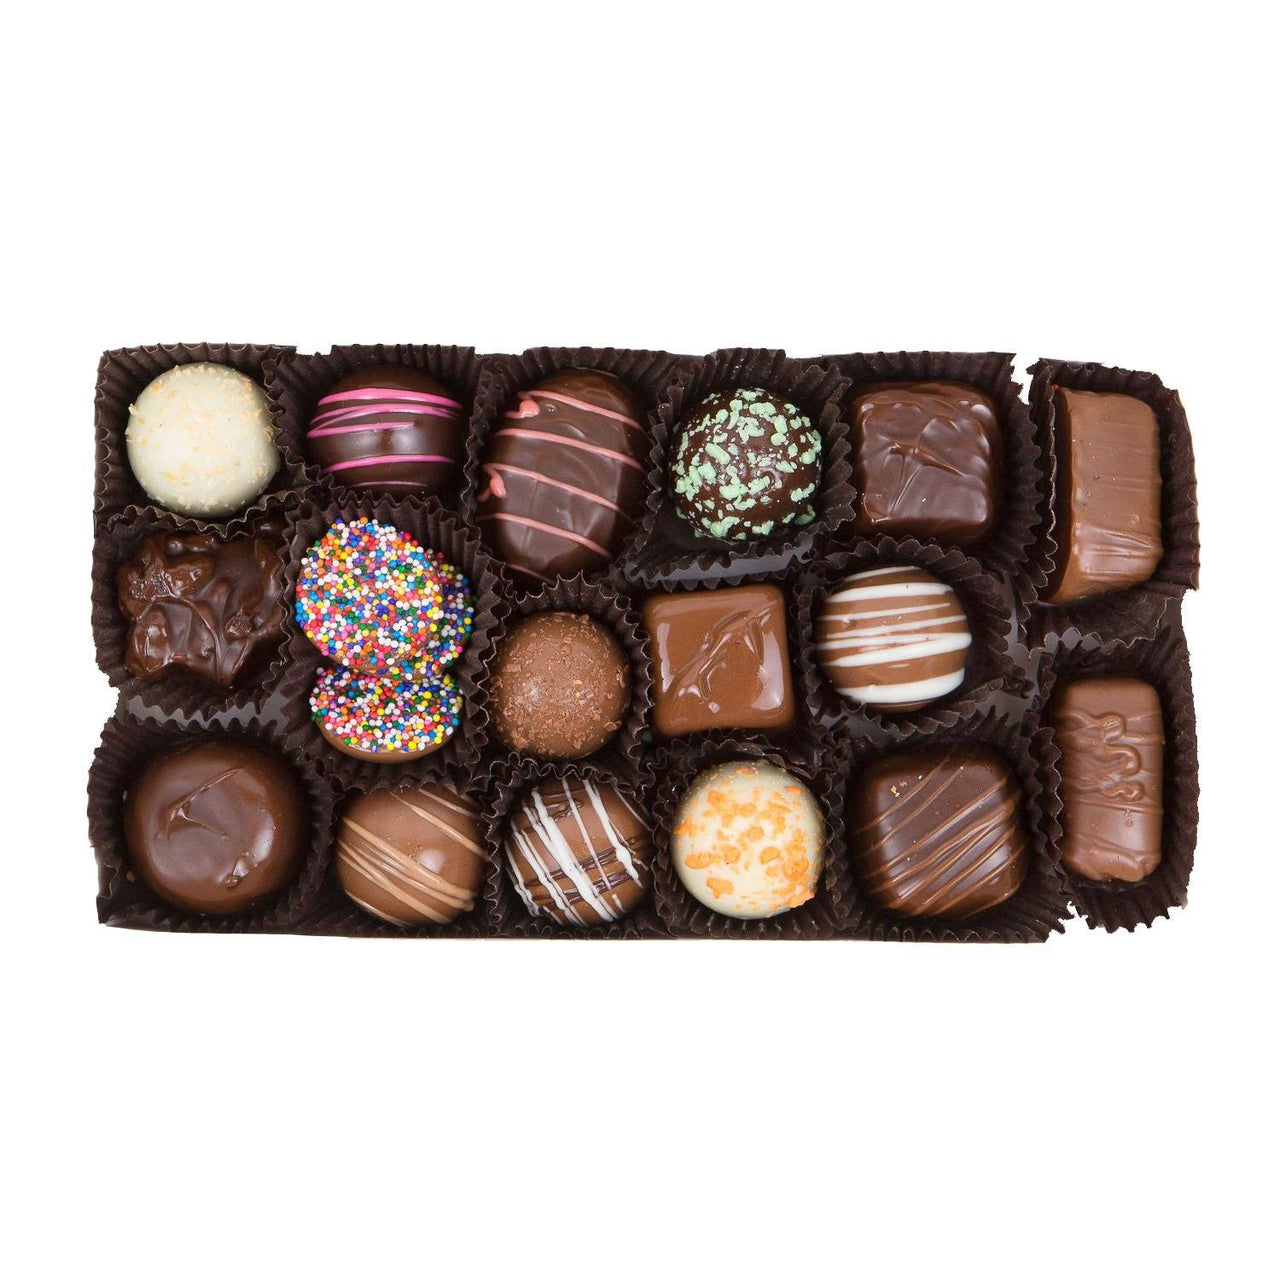 Retirement Gifts - Assorted Chocolate Gift Box - Jackie's Chocolate (1487132688419)